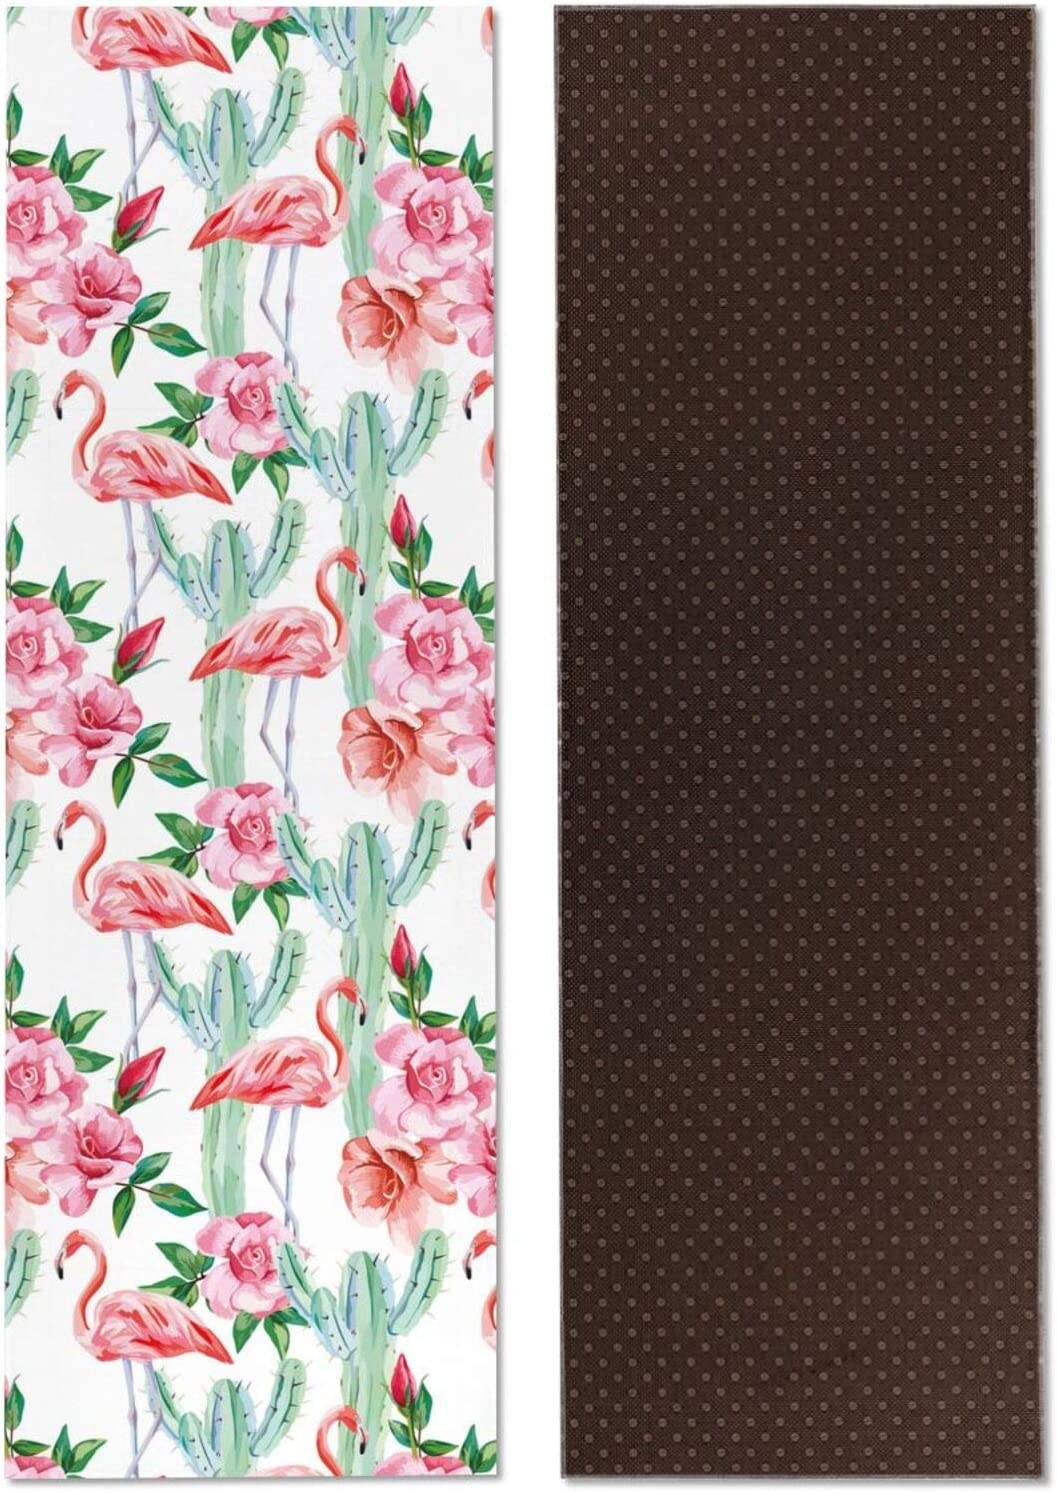 Pro Yoga Max 74% OFF Mats for Women Rose Flamingo Flowers Cactus Print Same day shipping